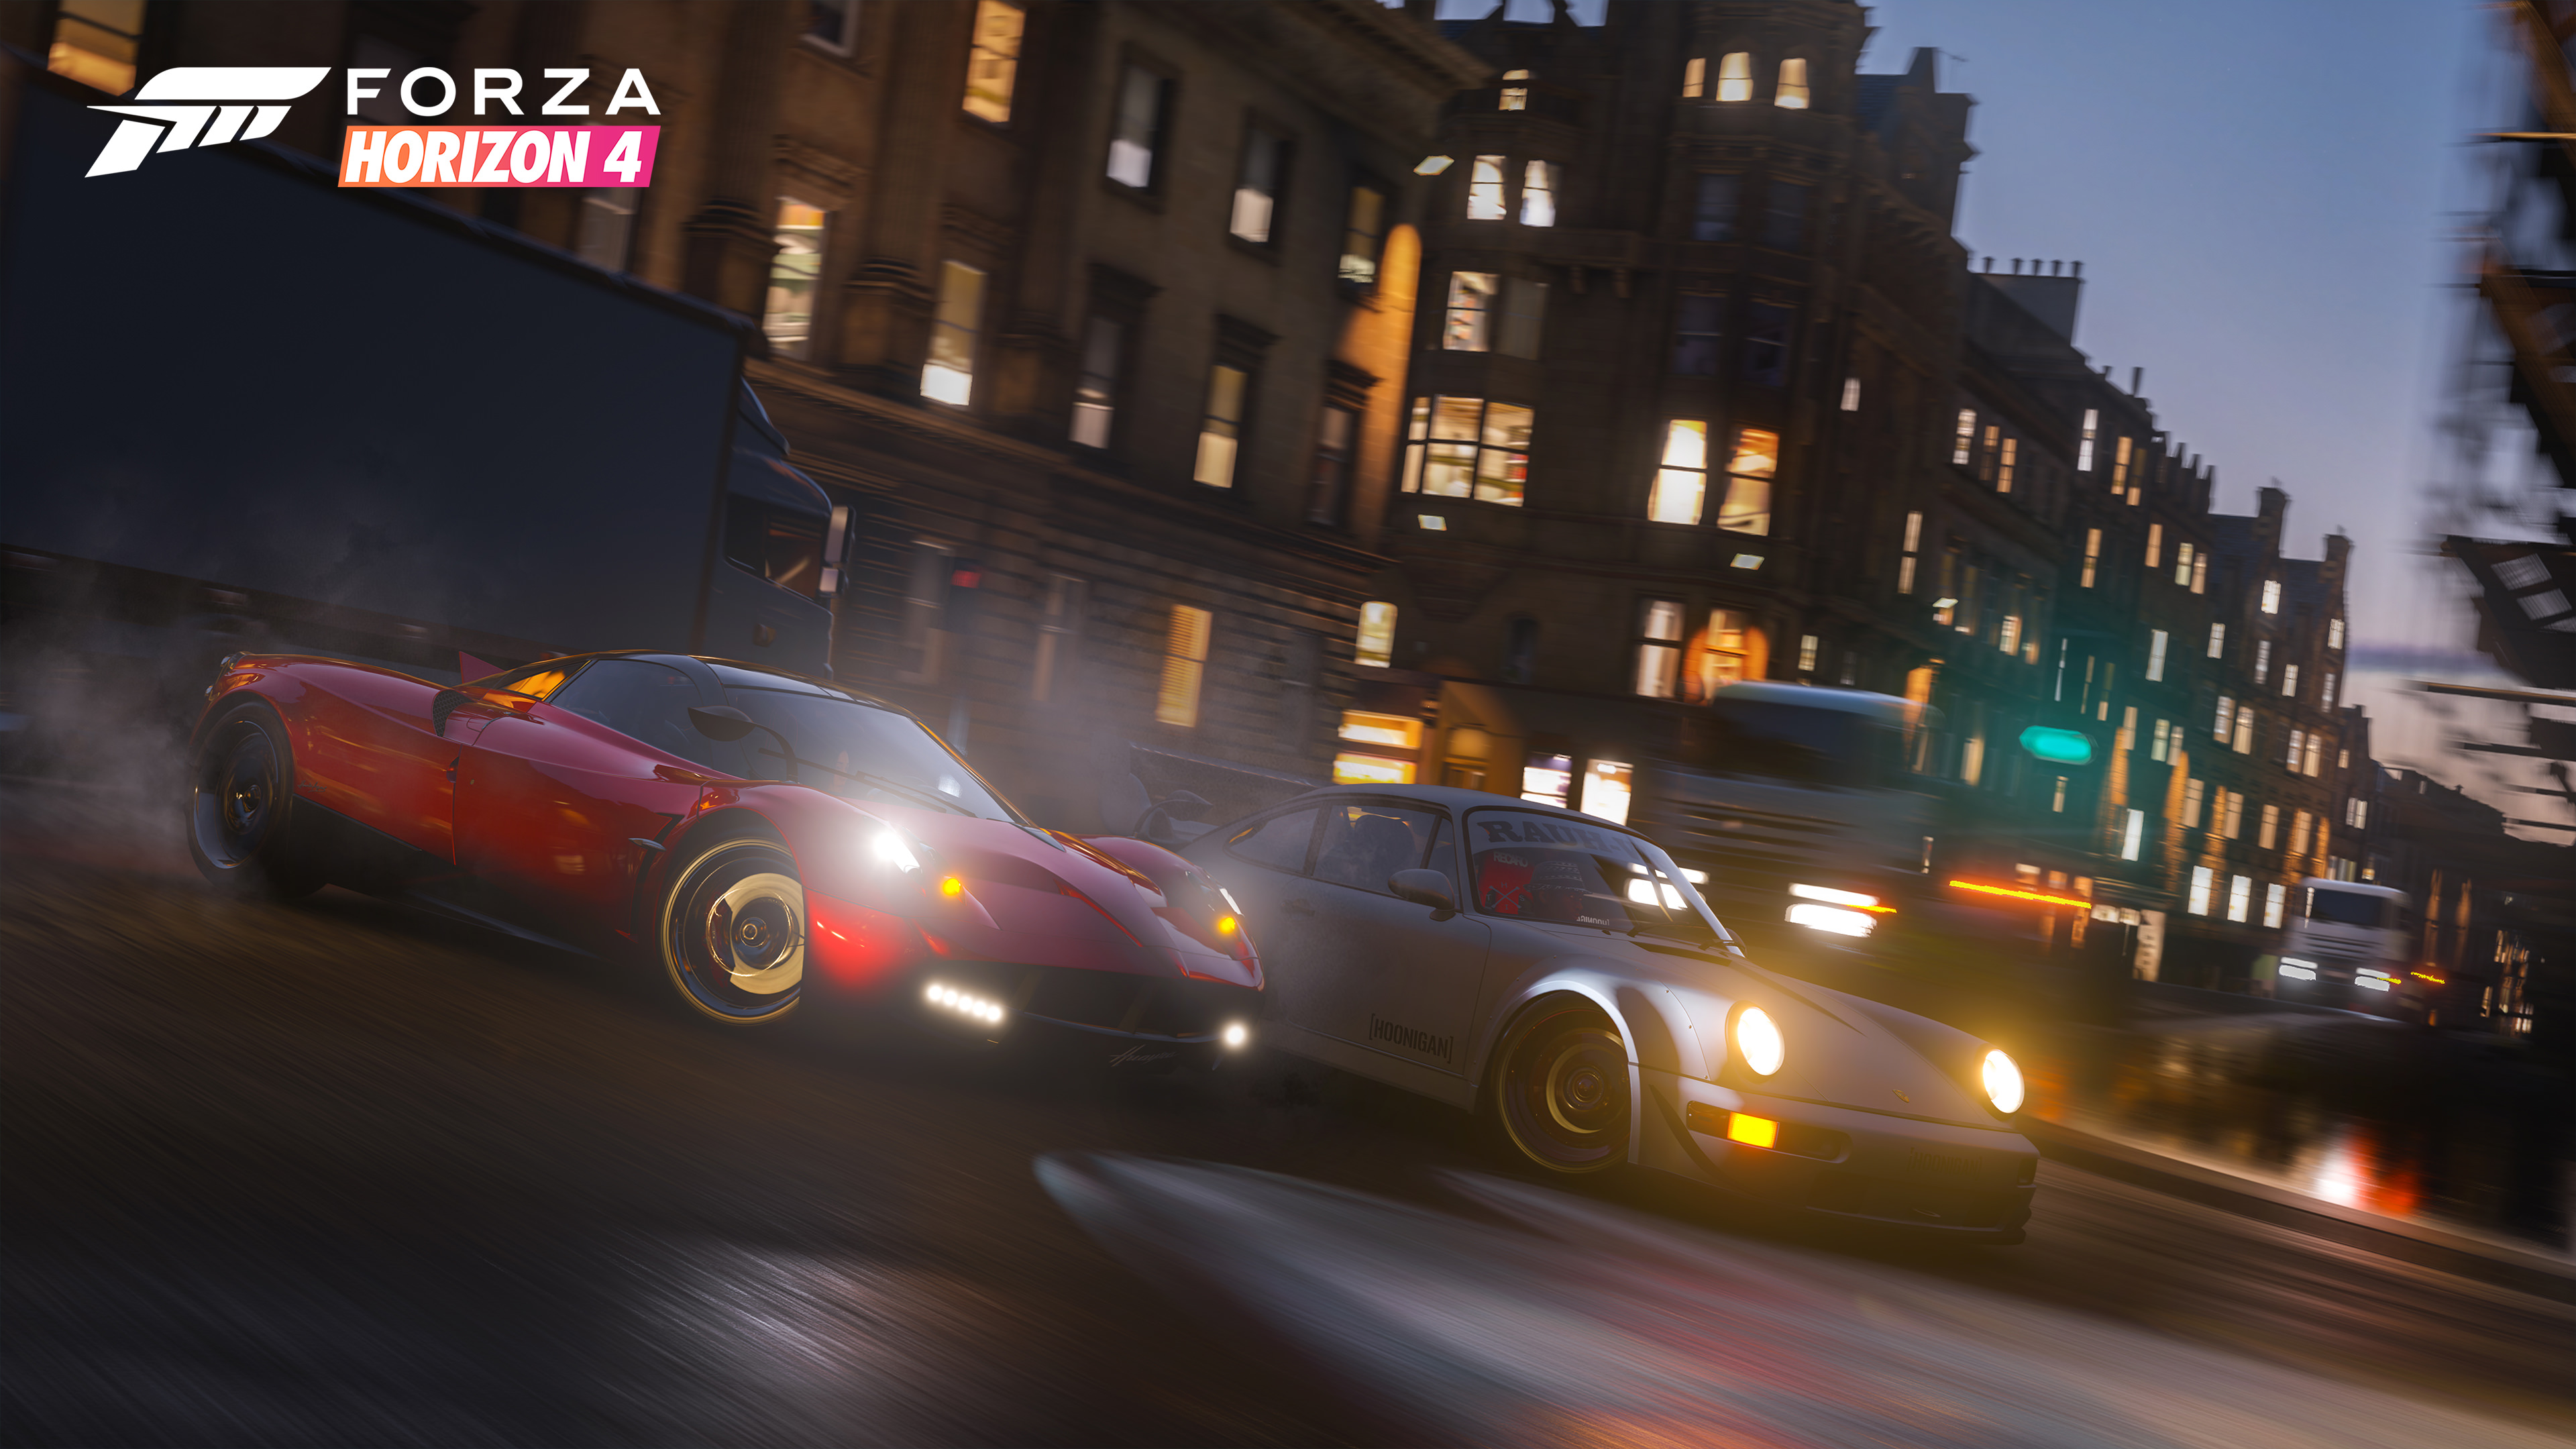 Forza horizon 4 racing hd cars 4k wallpapers images backgrounds photos and pictures - Forza logo wallpaper ...